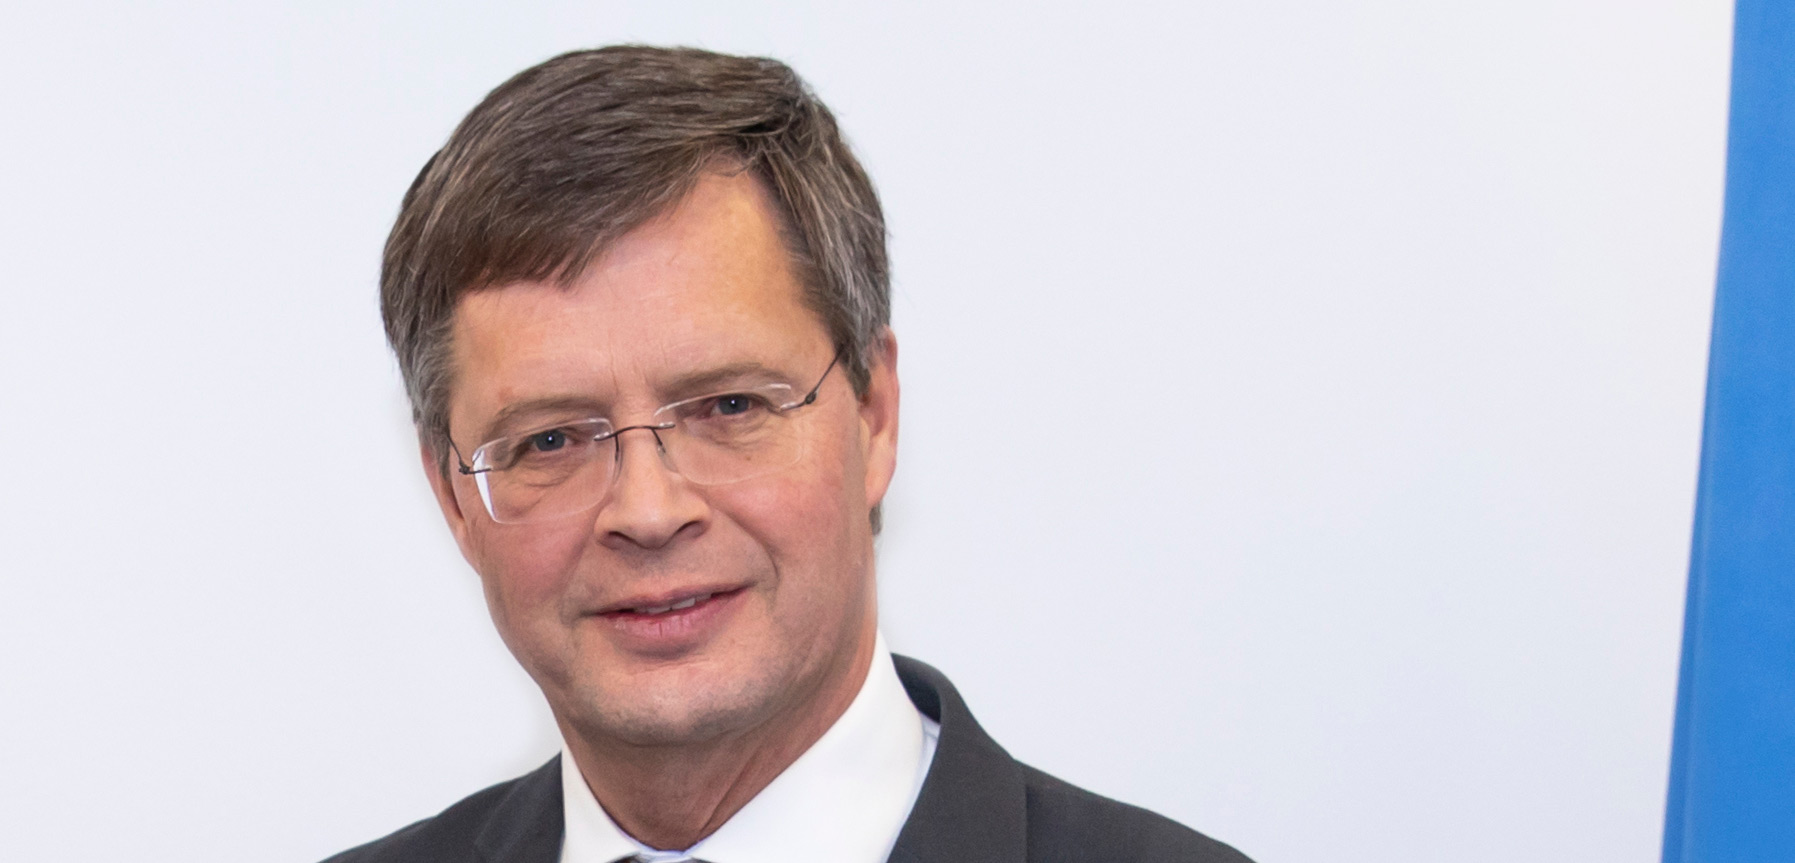 Jan Peter Balkenende: Against the current for the Common Good